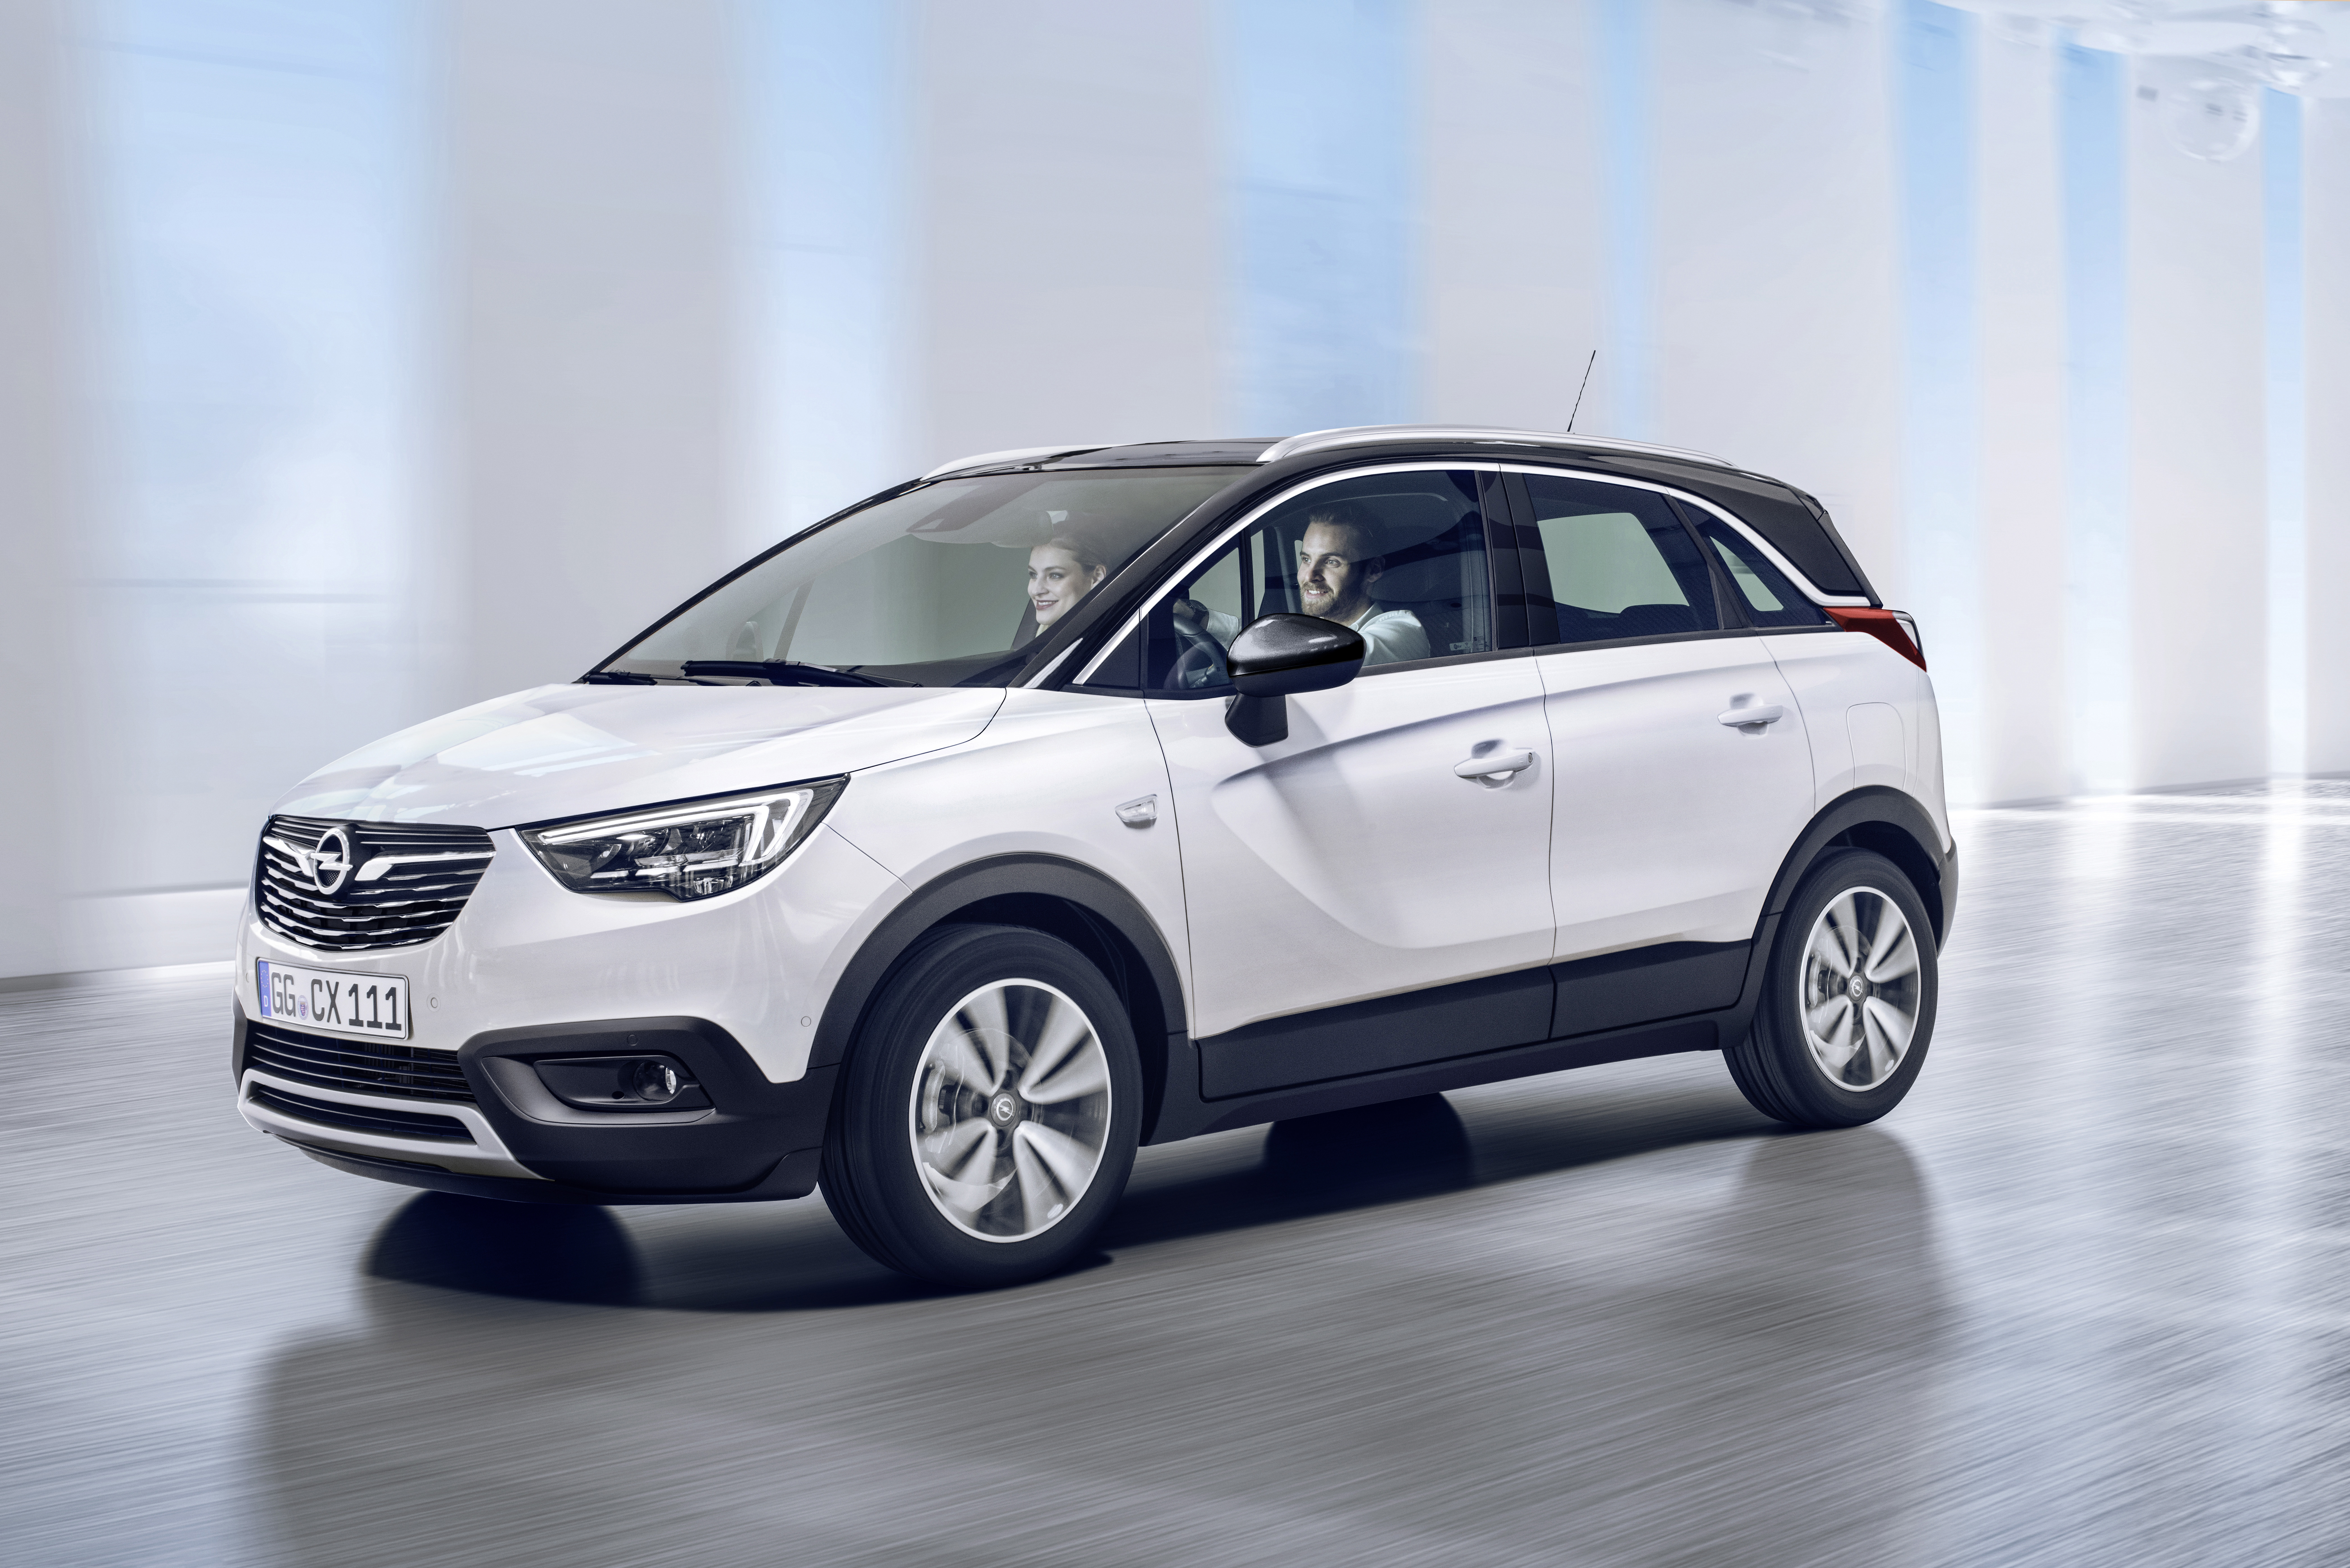 2017 Opel Crossland X Goes Official, On Sale This Summer - autoevolution